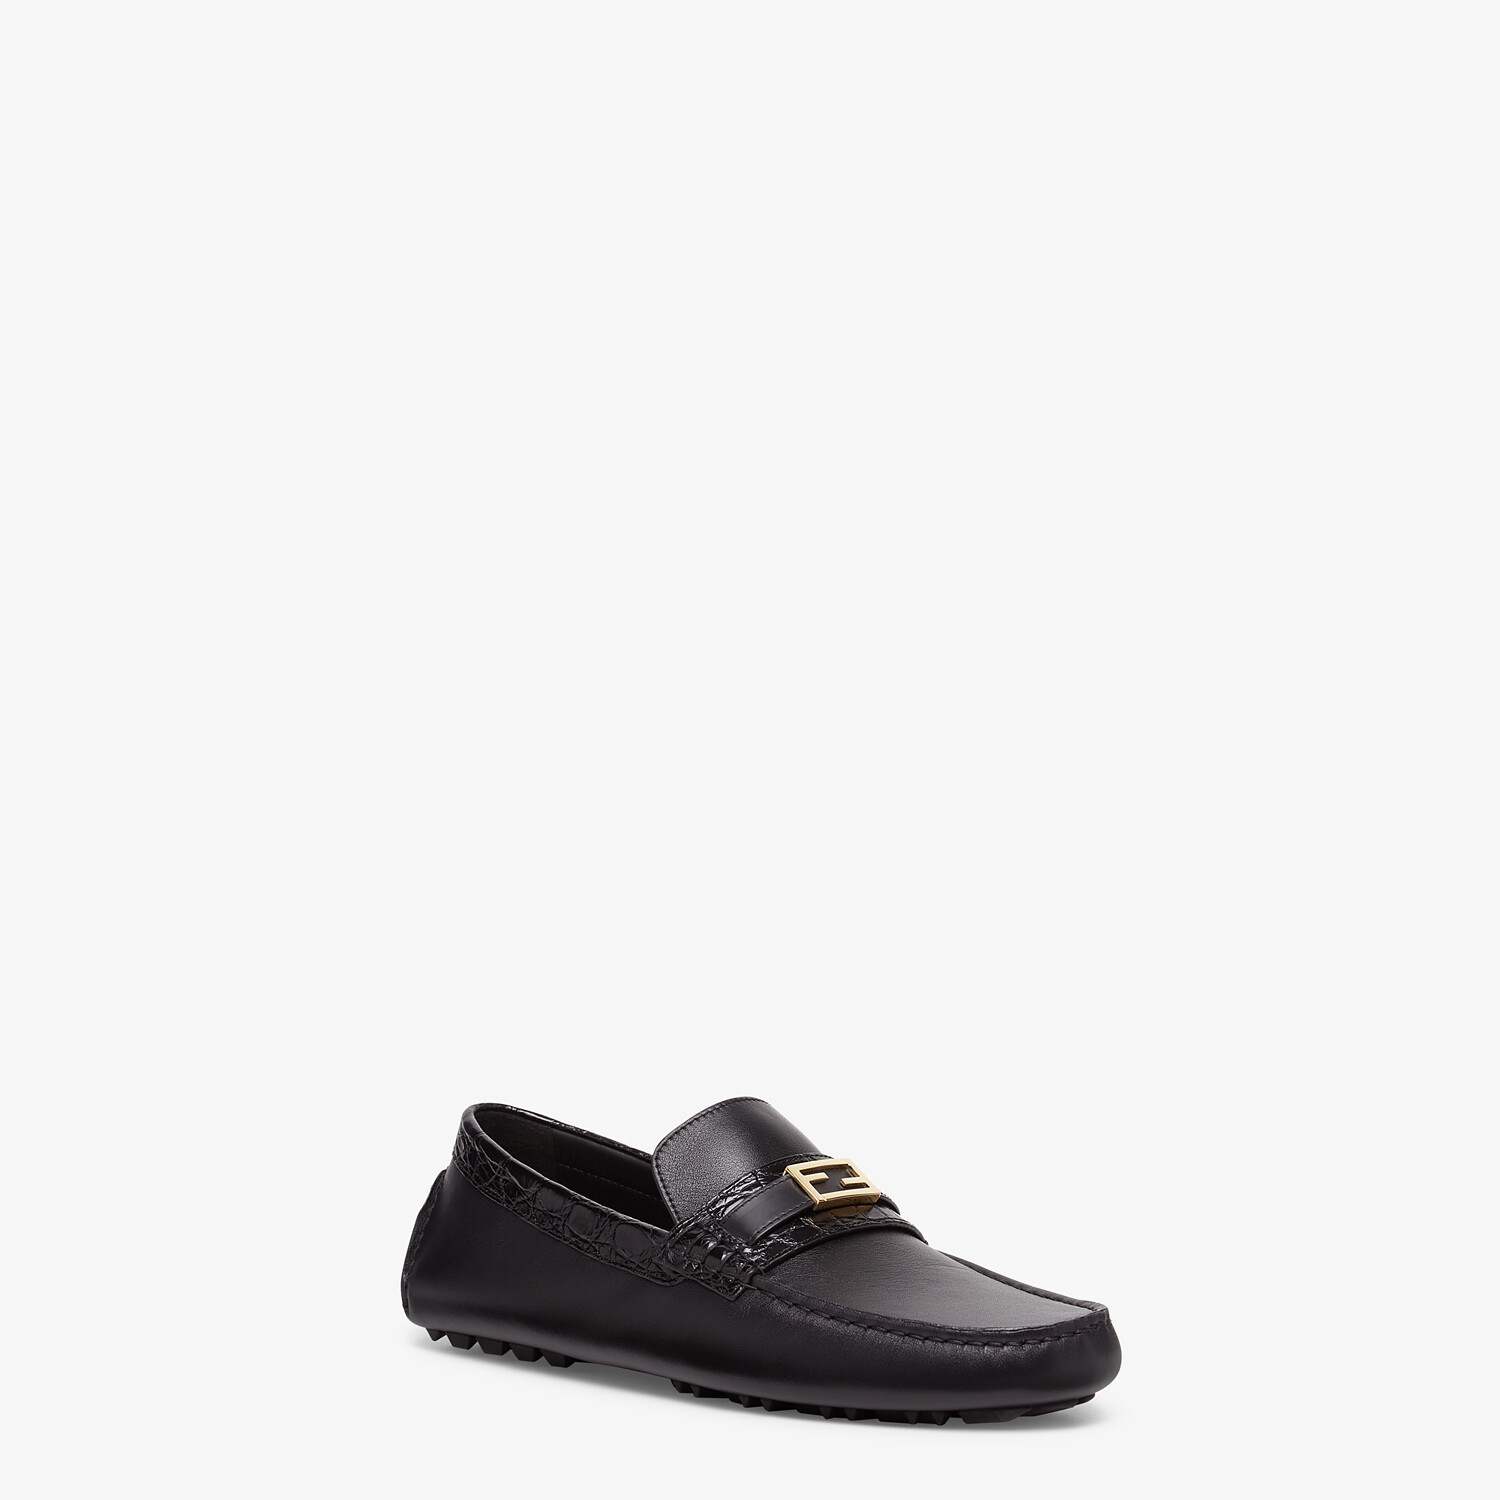 FENDI LOAFERS - Black leather and caiman drivers. - view 2 detail